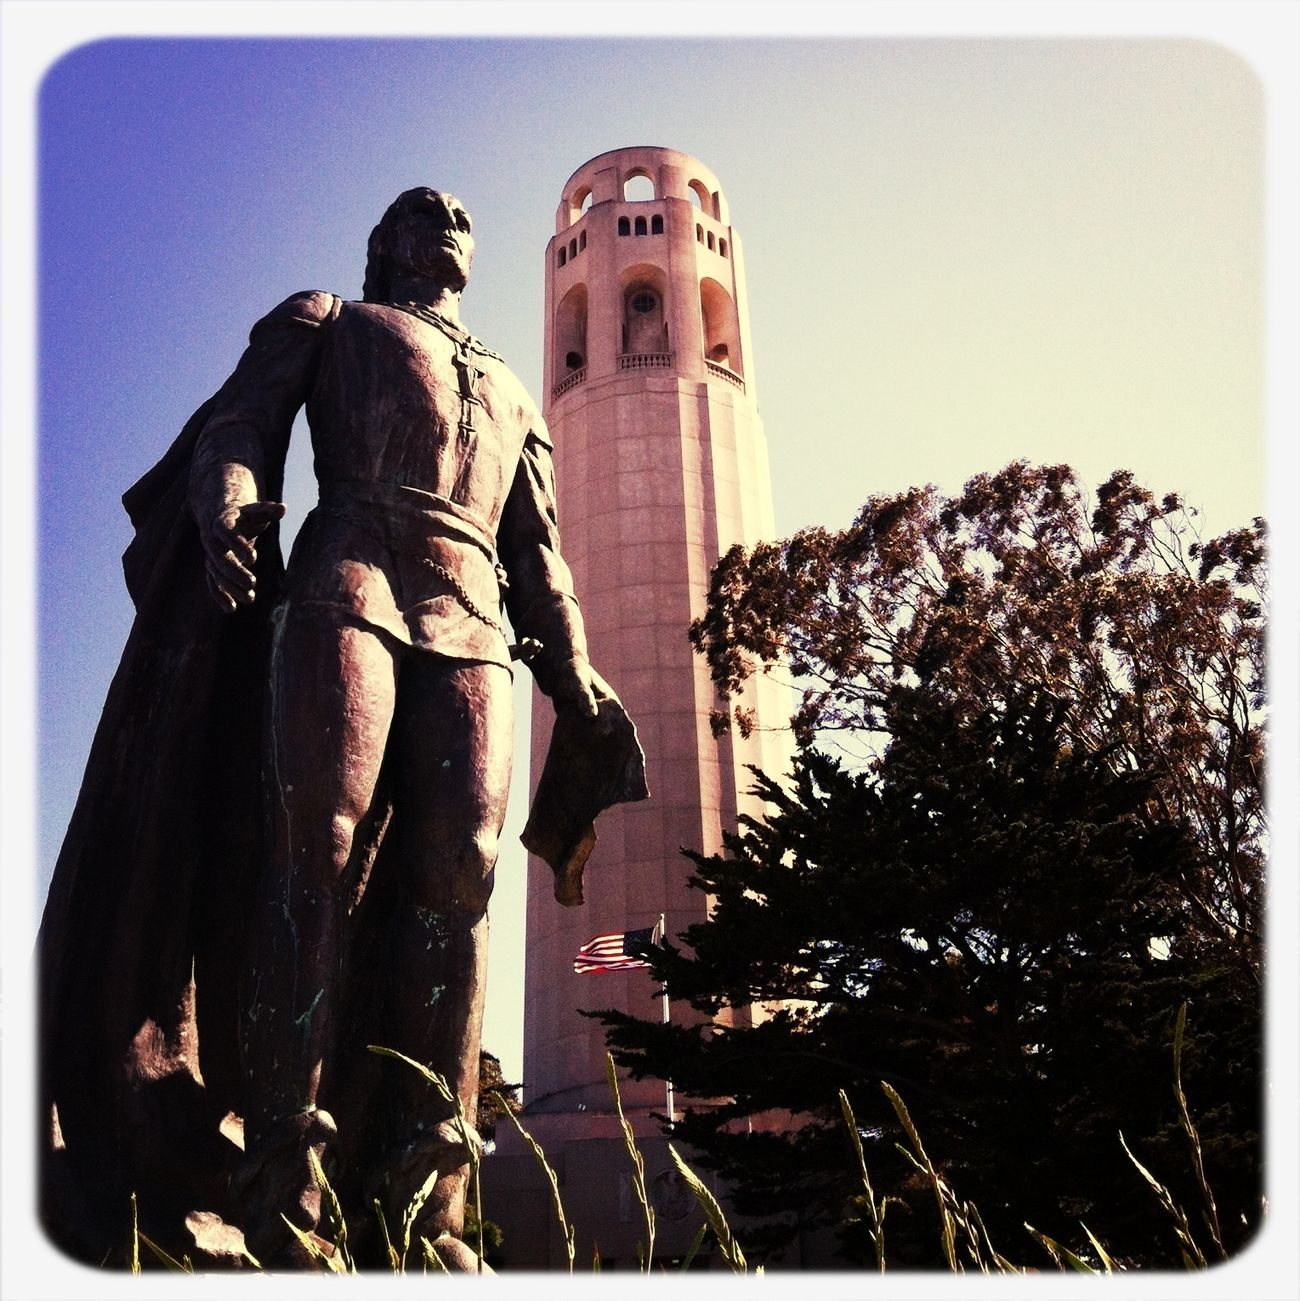 Statue Monuments Coit Tower GetYourGuide Cityscapes